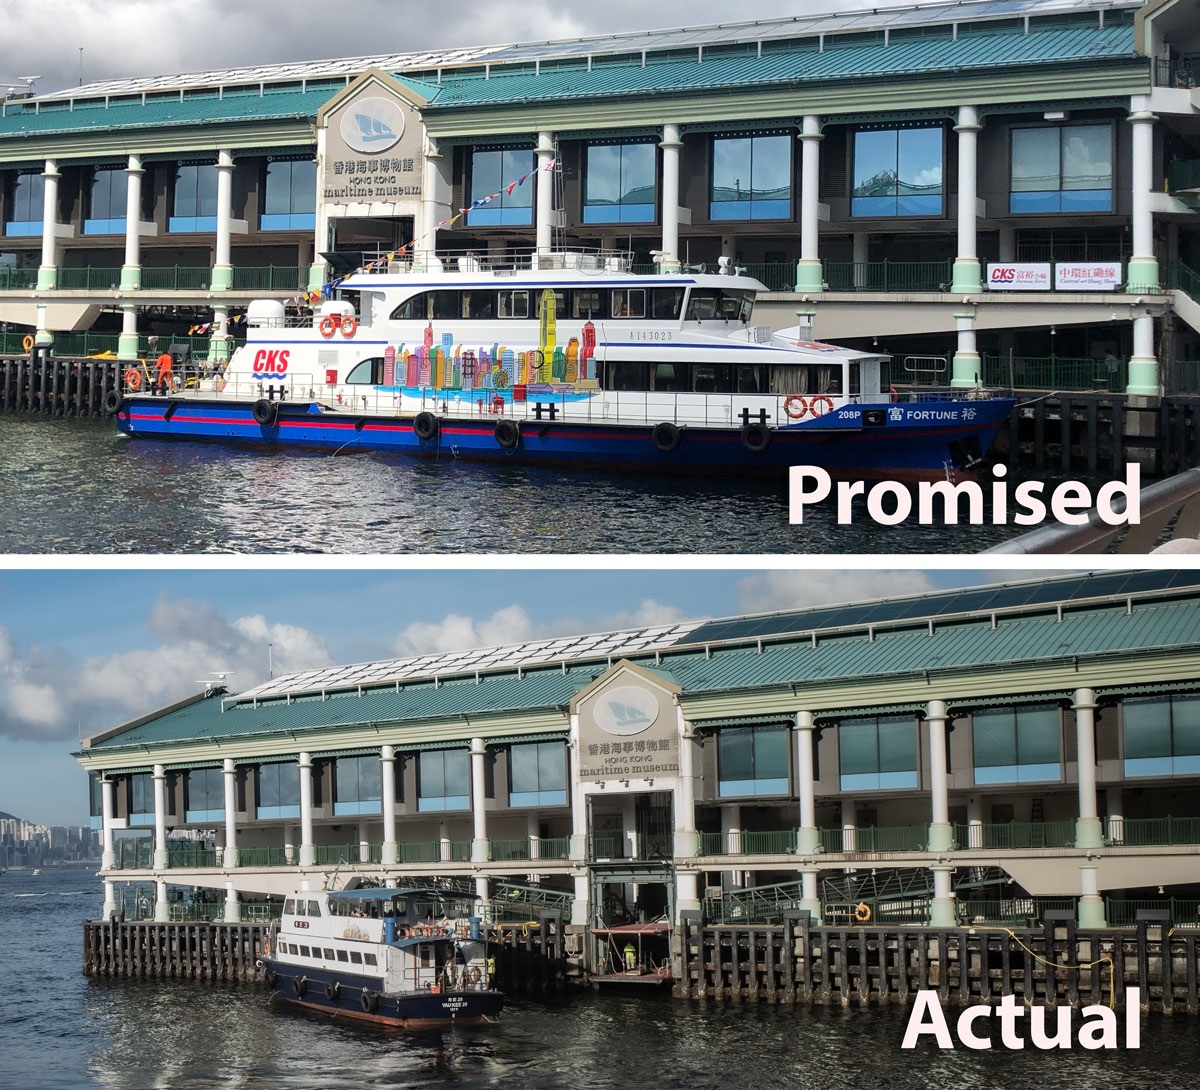 A fast sleek ferry at the top, and a small kai to at the bottom, two images comparing boat sizes